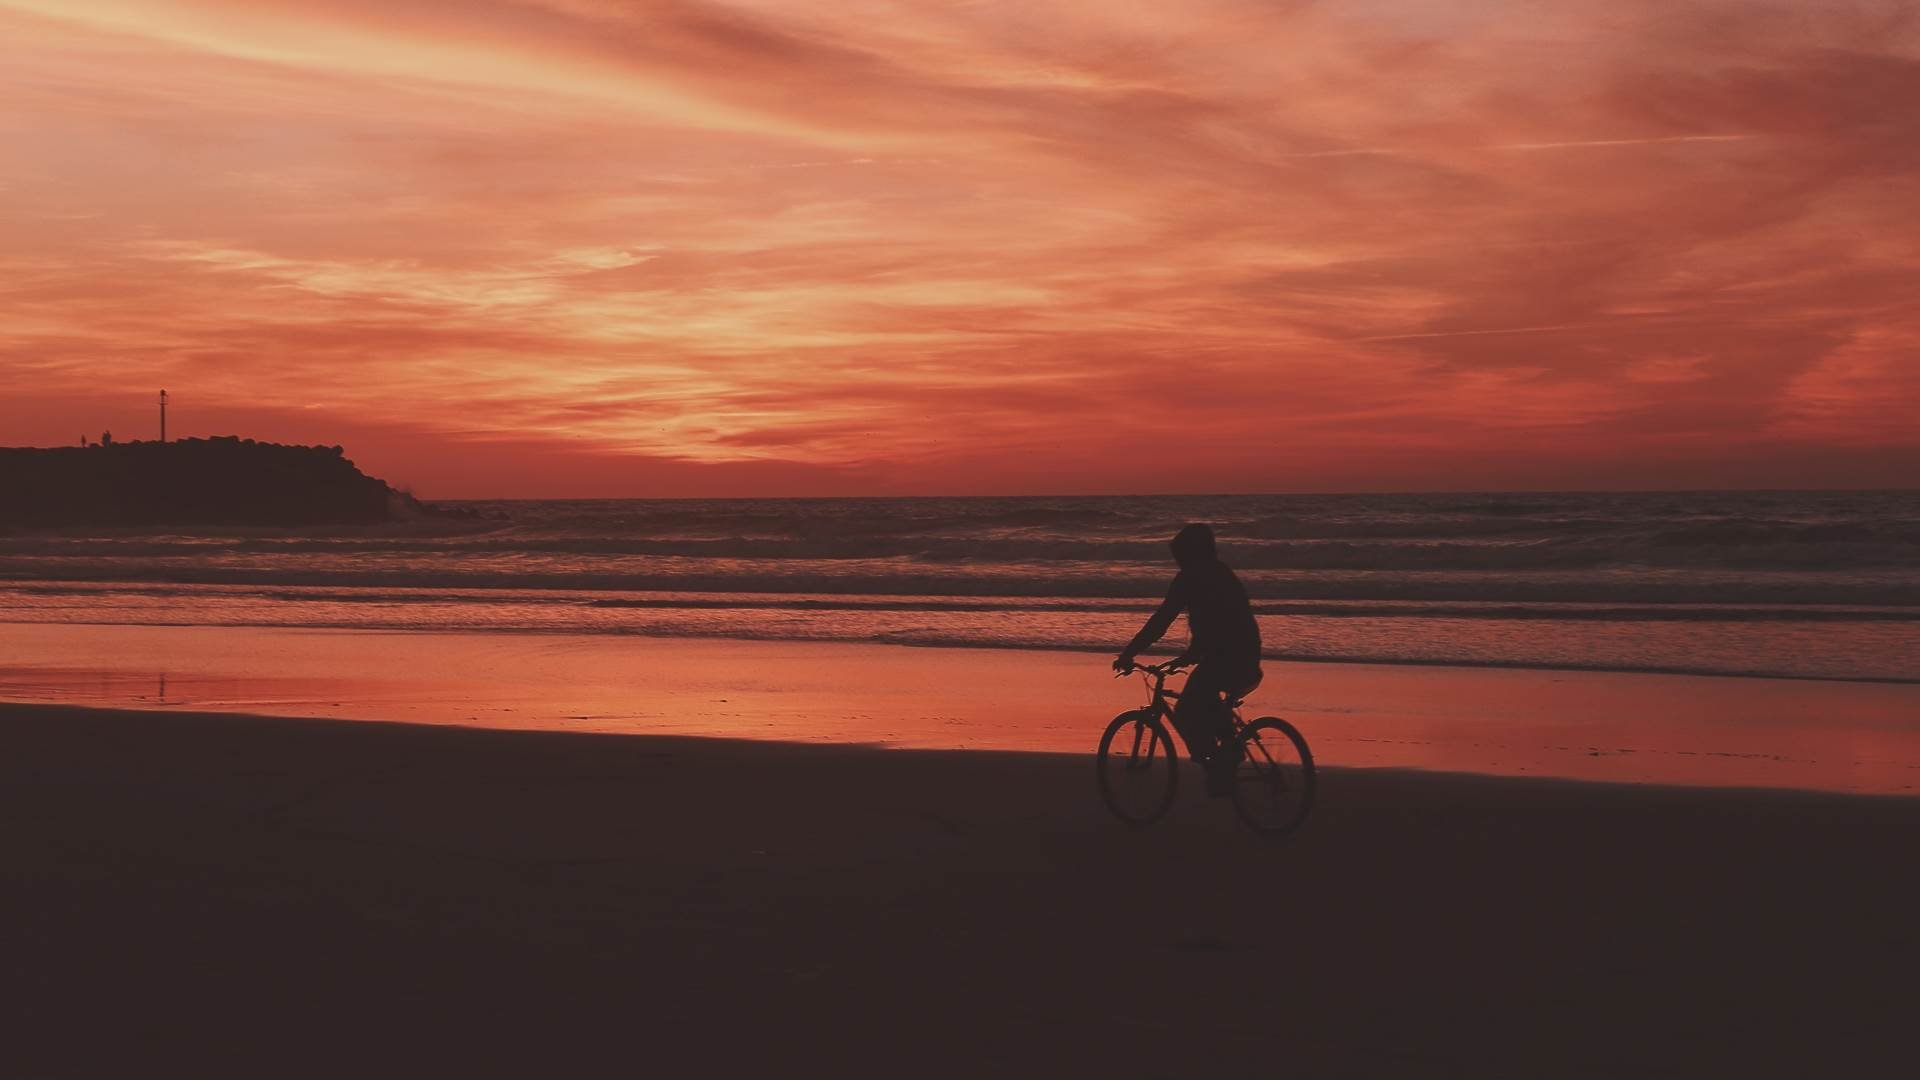 Bicyclist Sea Shore Sunset Wallpaper